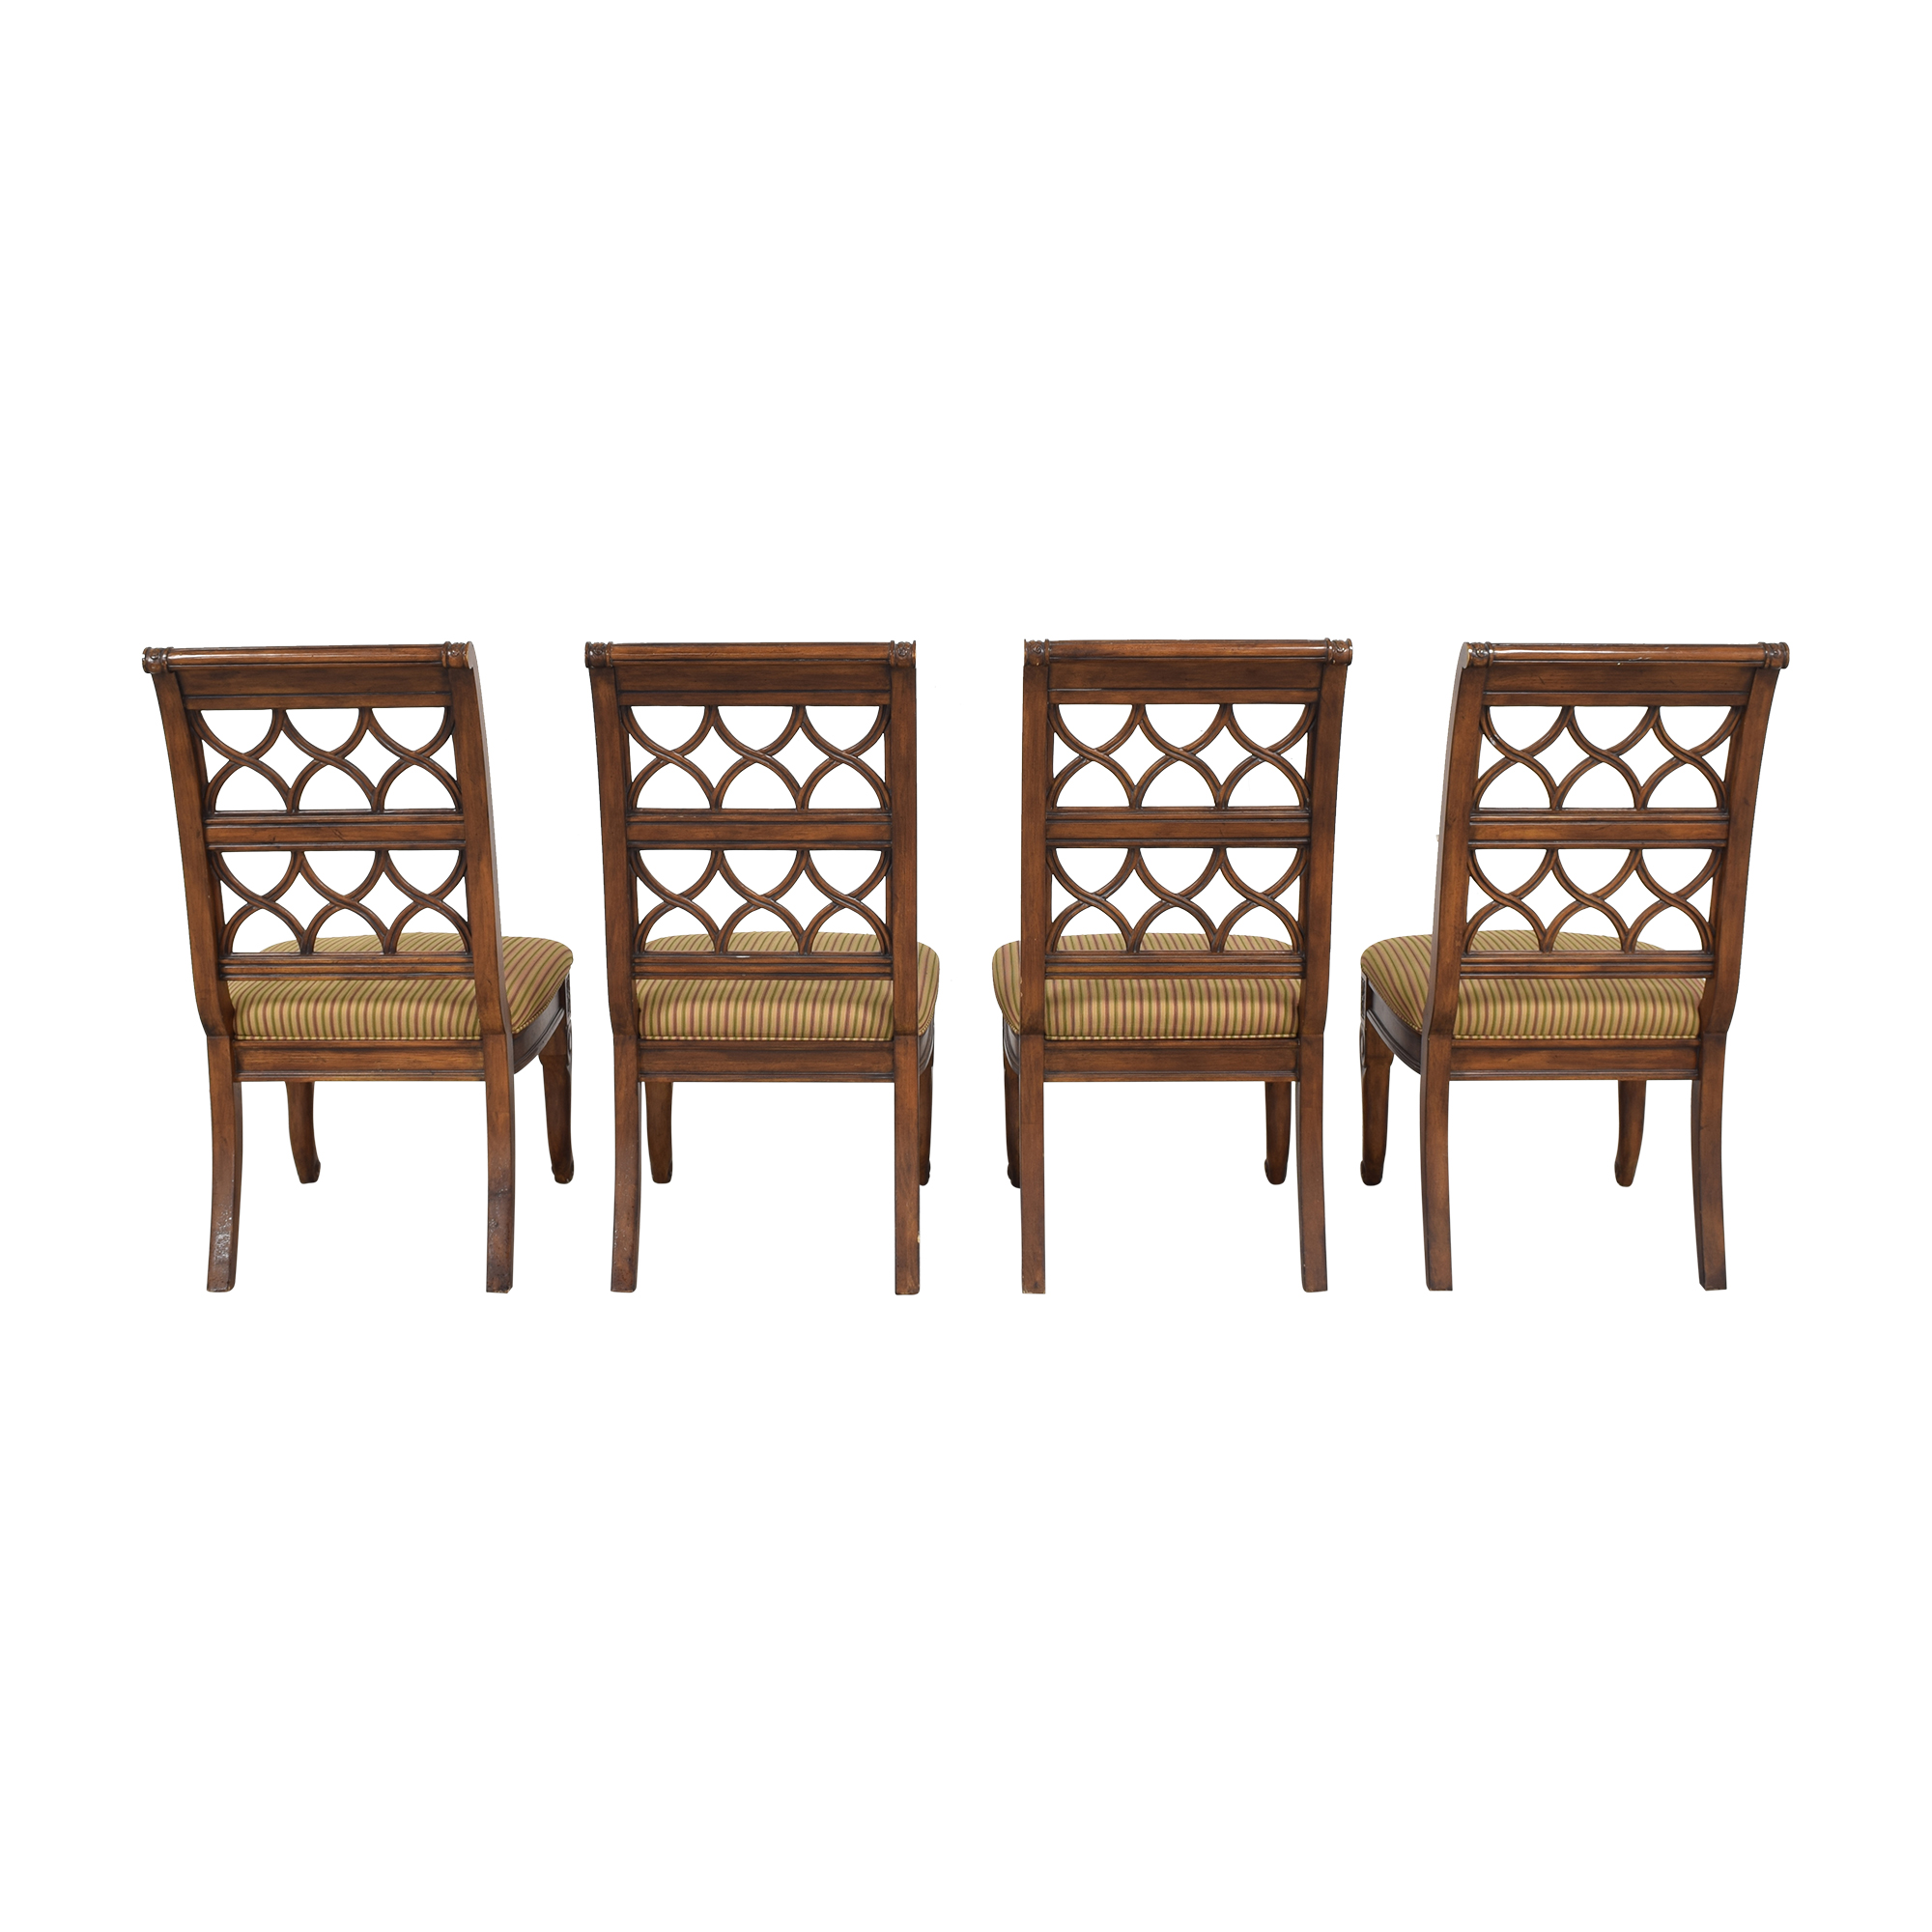 Drexel Heritage Drexel Heritage Dining Side Chairs used